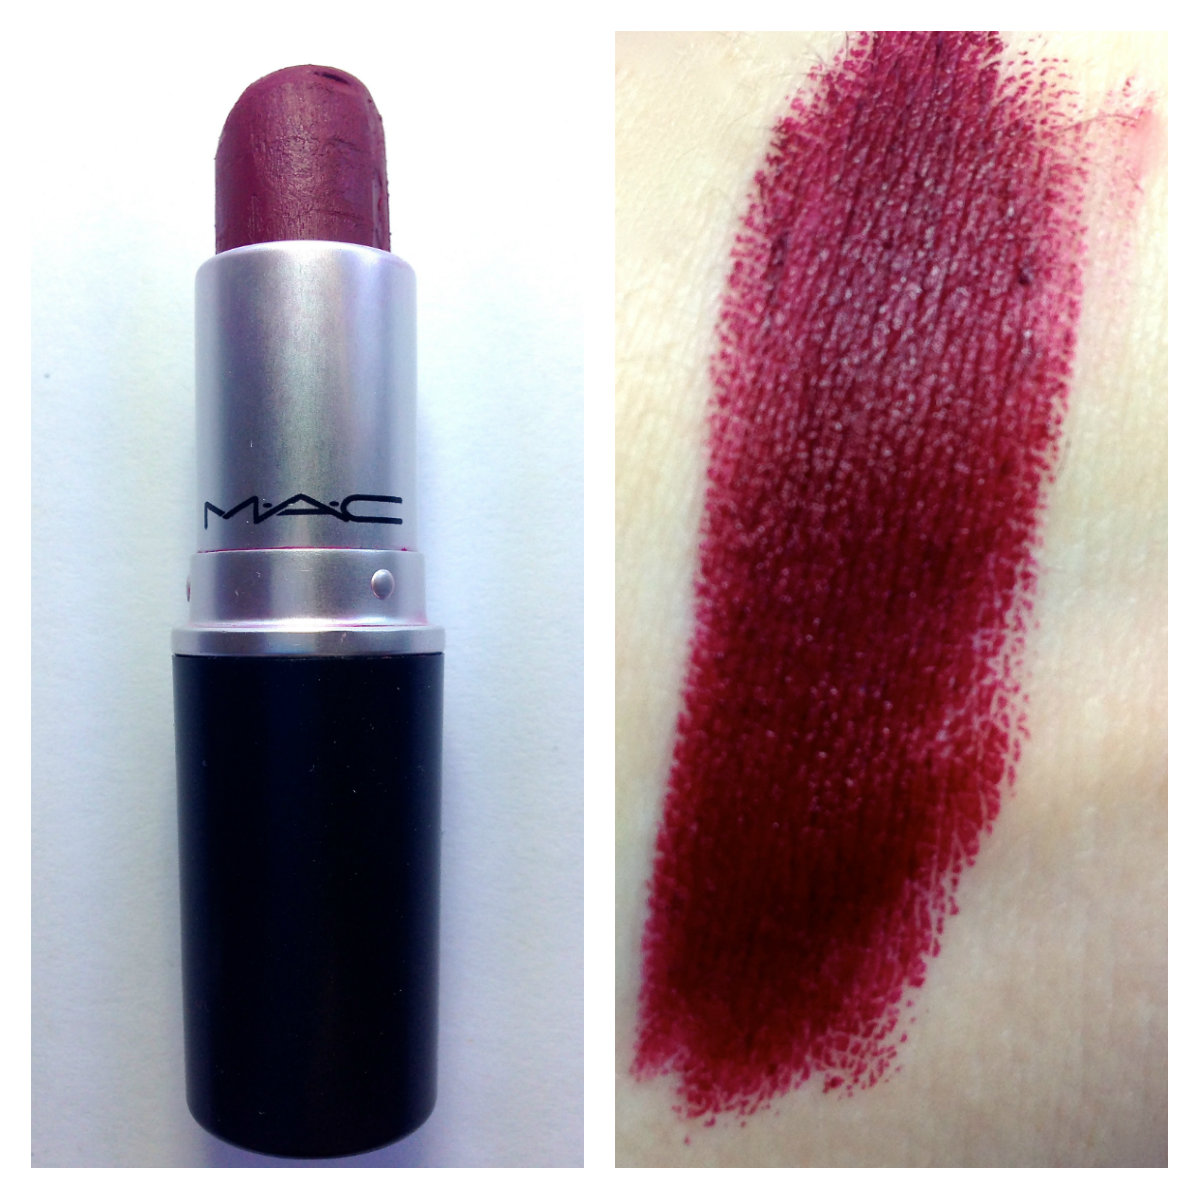 Super What's a good first mac lipstick color purchase? | Lipstick Alley XJ39